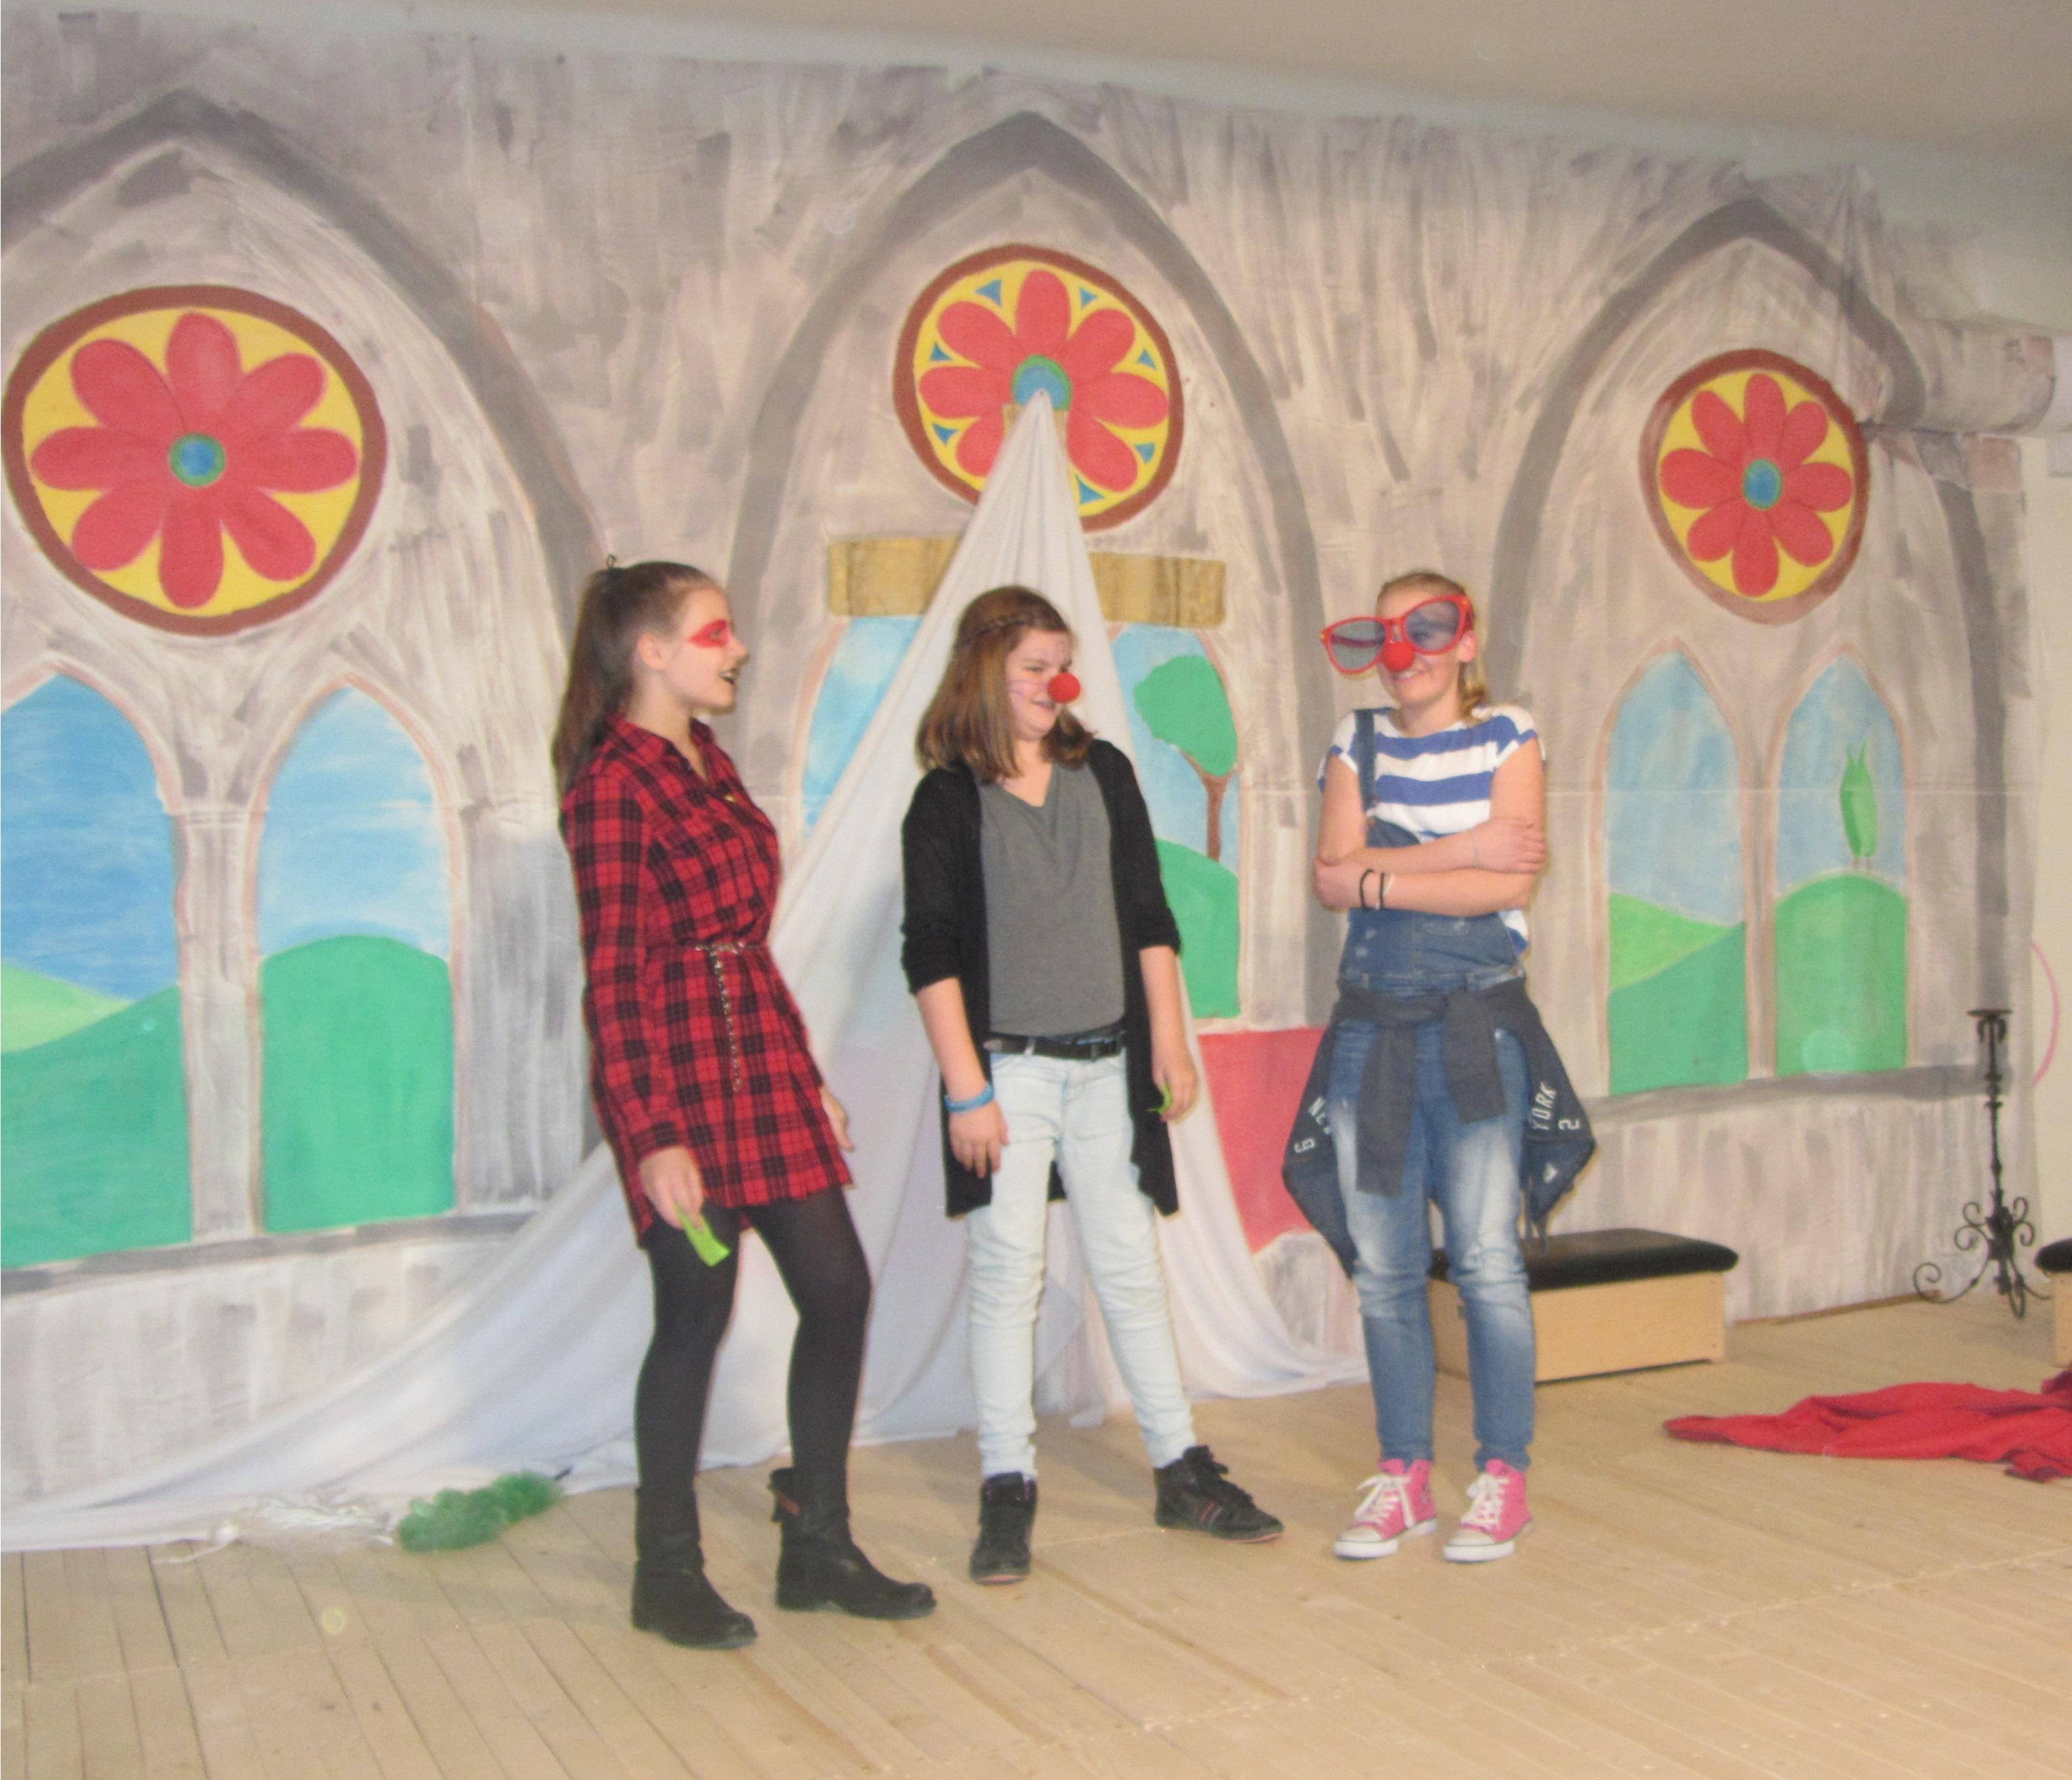 English School Of Budapest: UK Comic Relief Charity Project